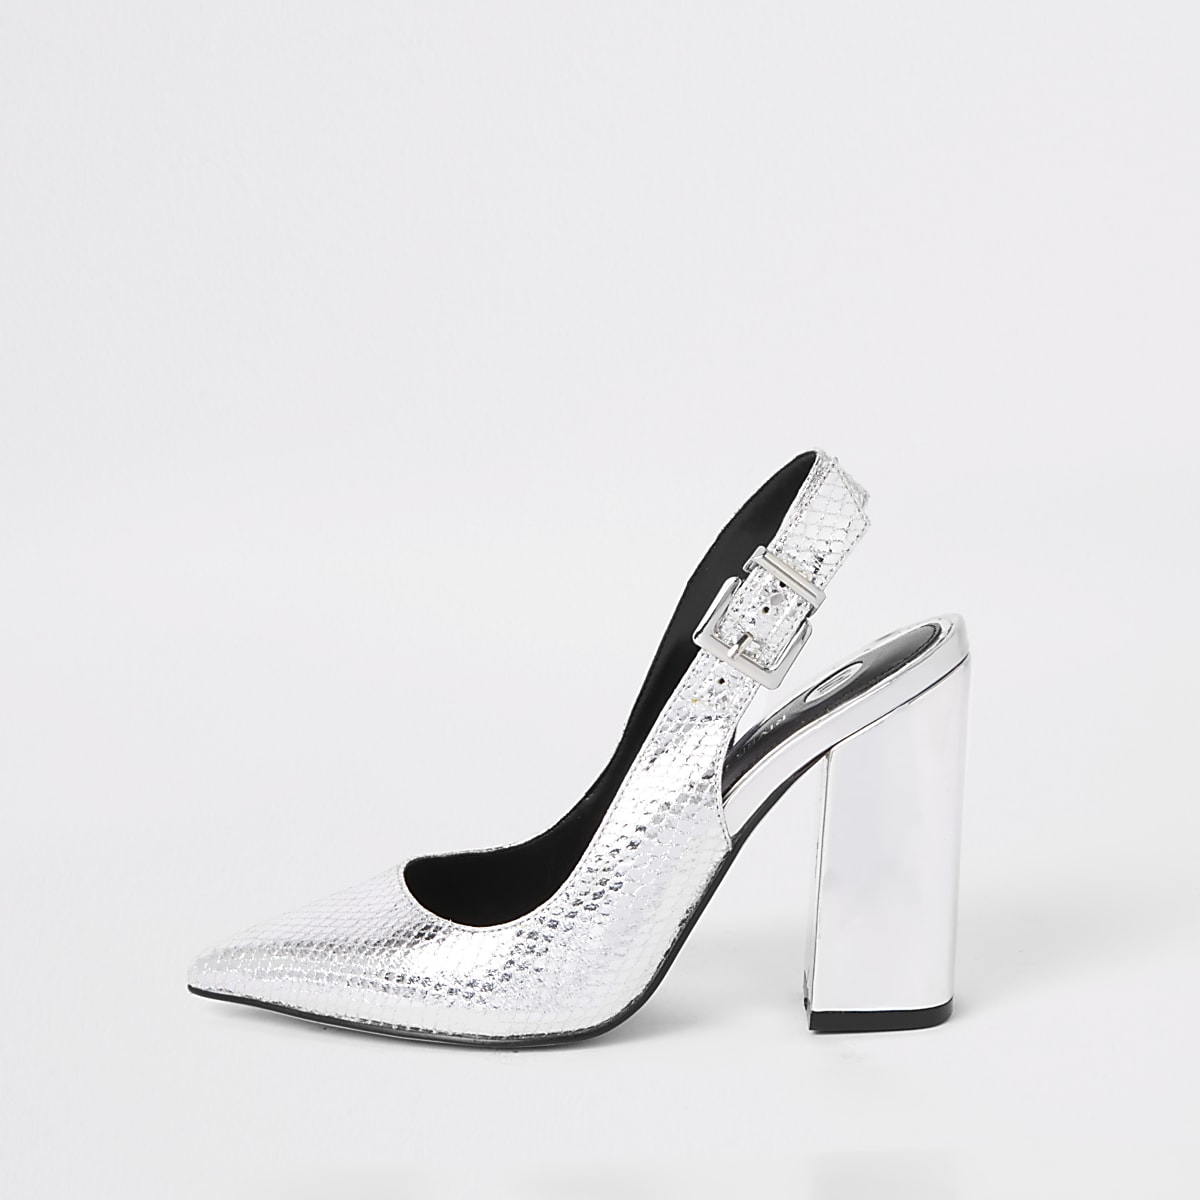 Silver block heel sling back court shoes